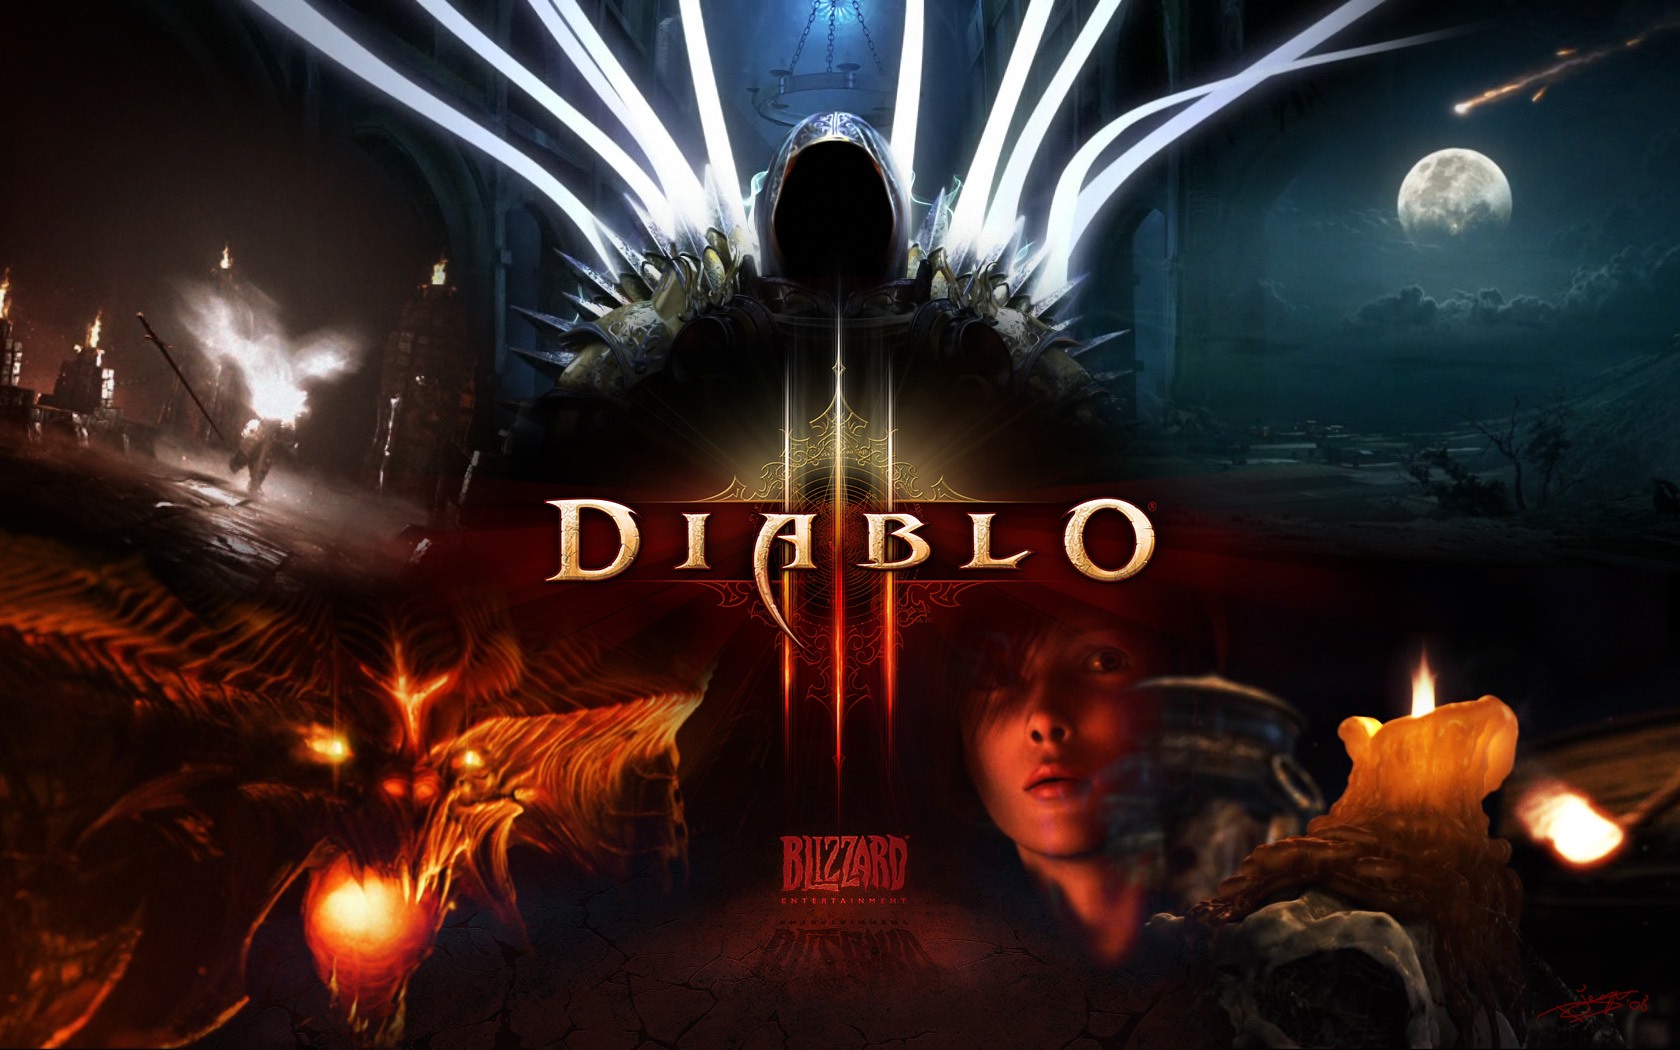 Ps3 diablo 3 nude code erotic download